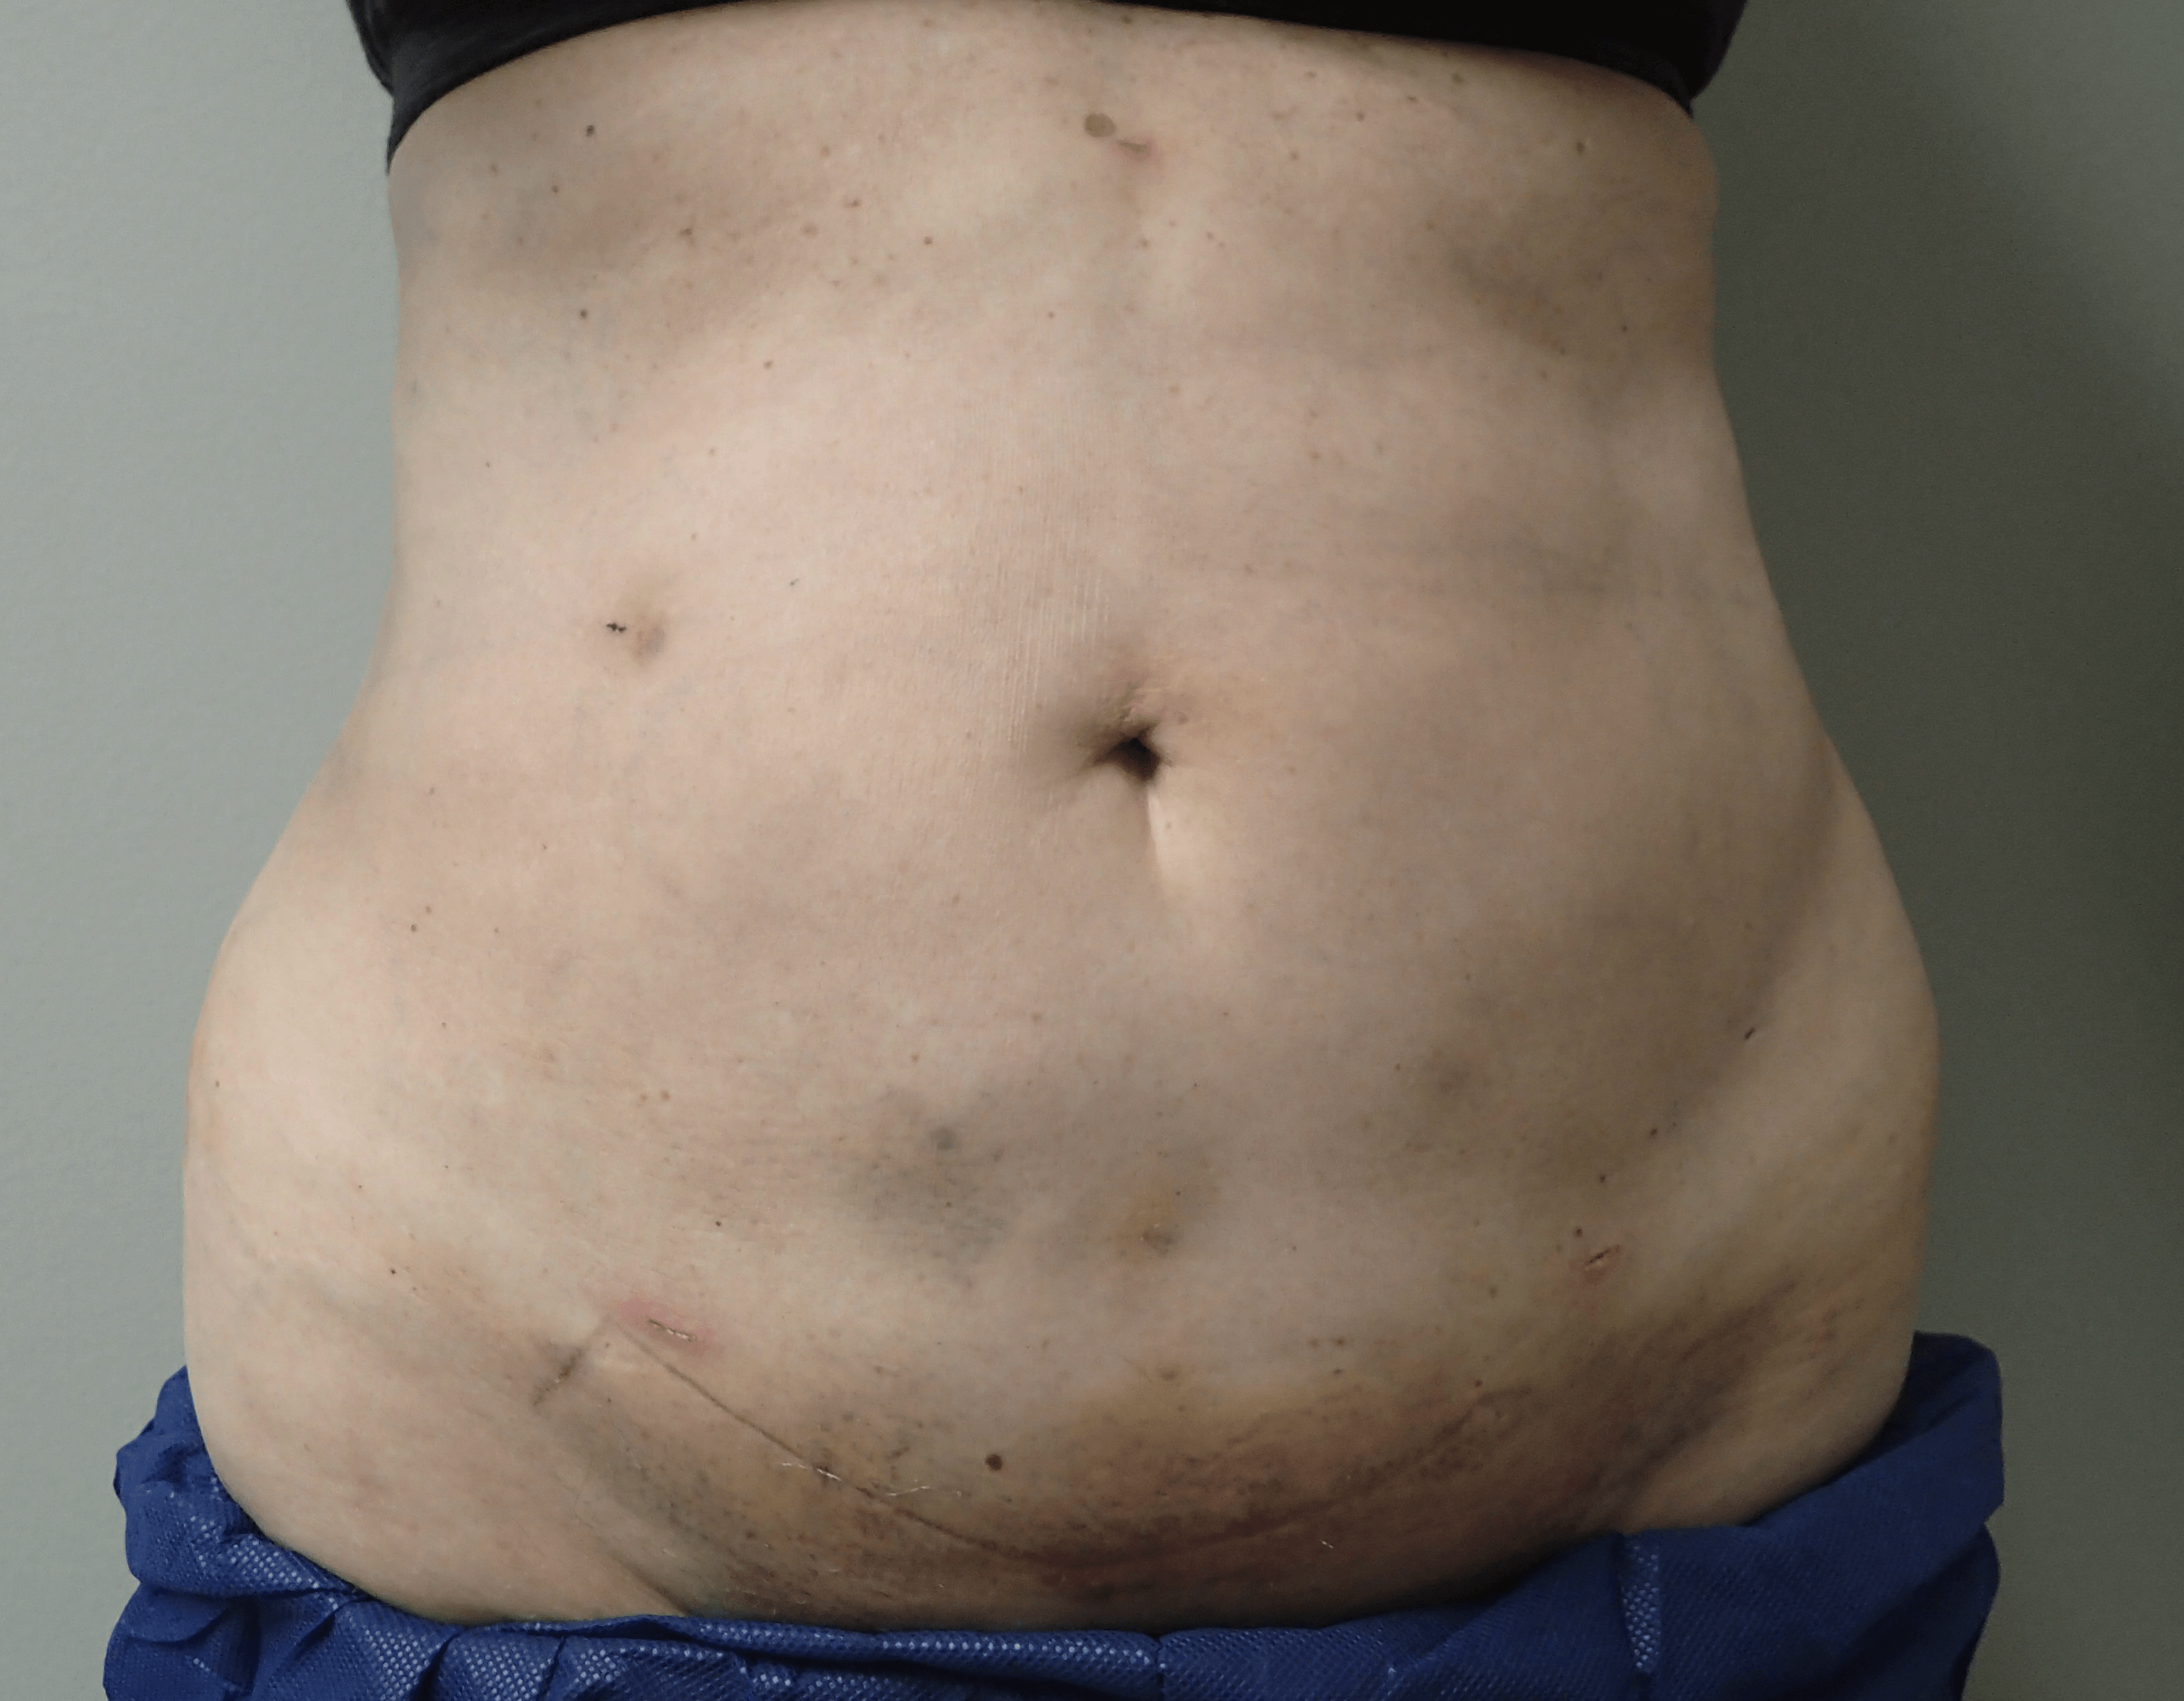 Smartlipo on 61 yo female After (just 6 days later)